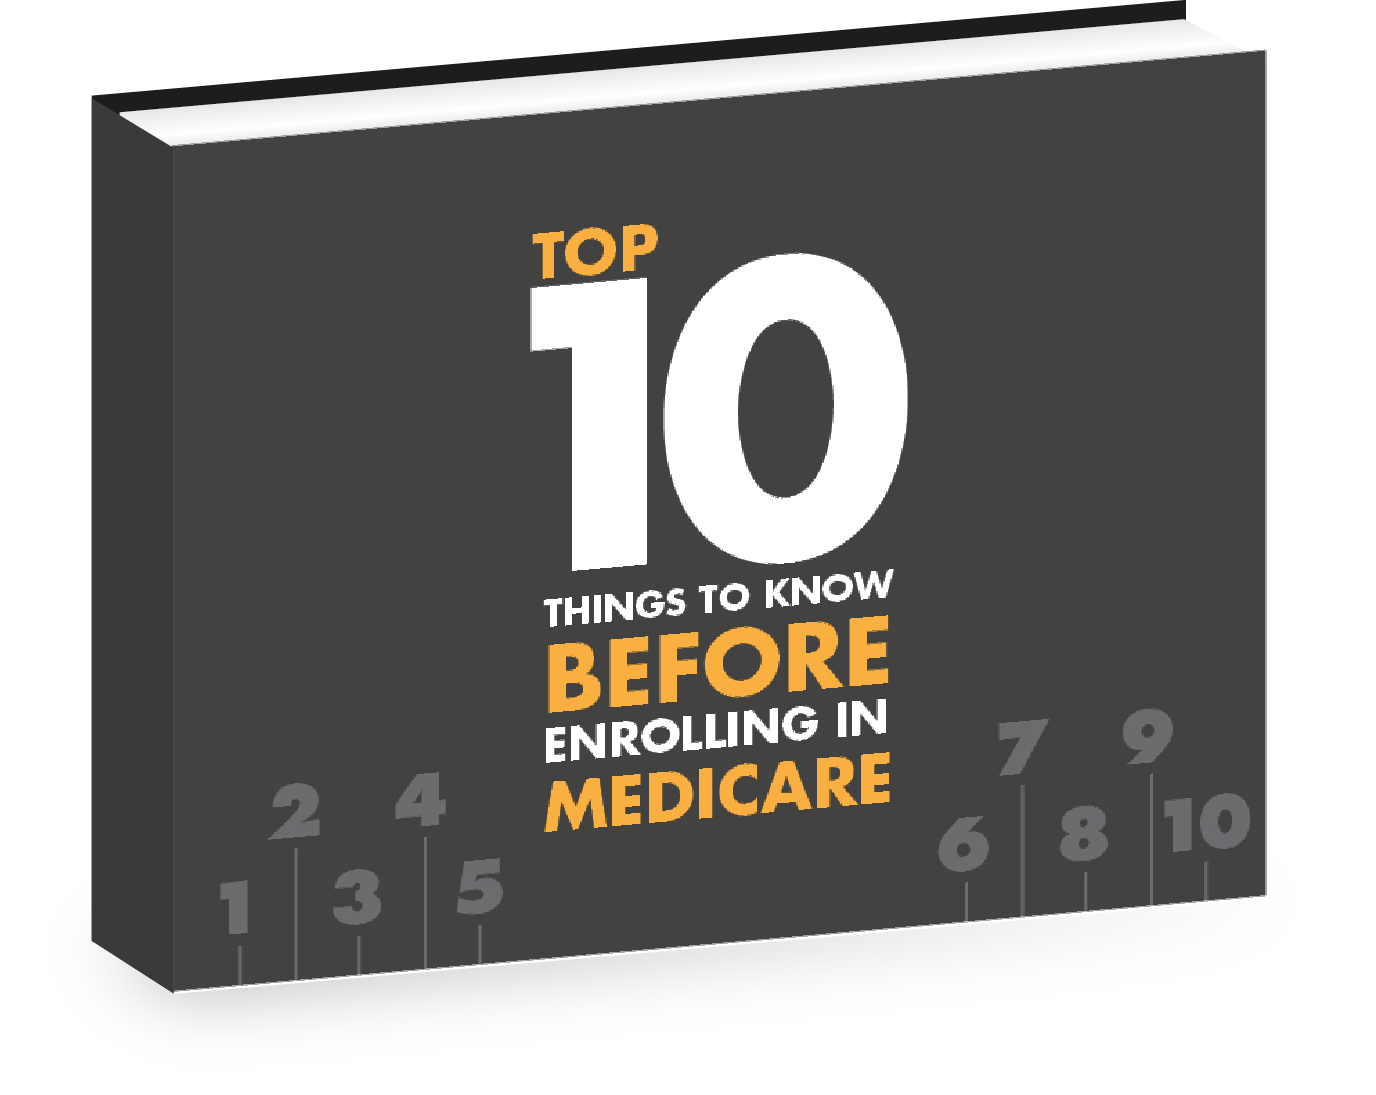 Book_Cover_2_10_things_to_know_before_enrolling_in_medicare.jpg